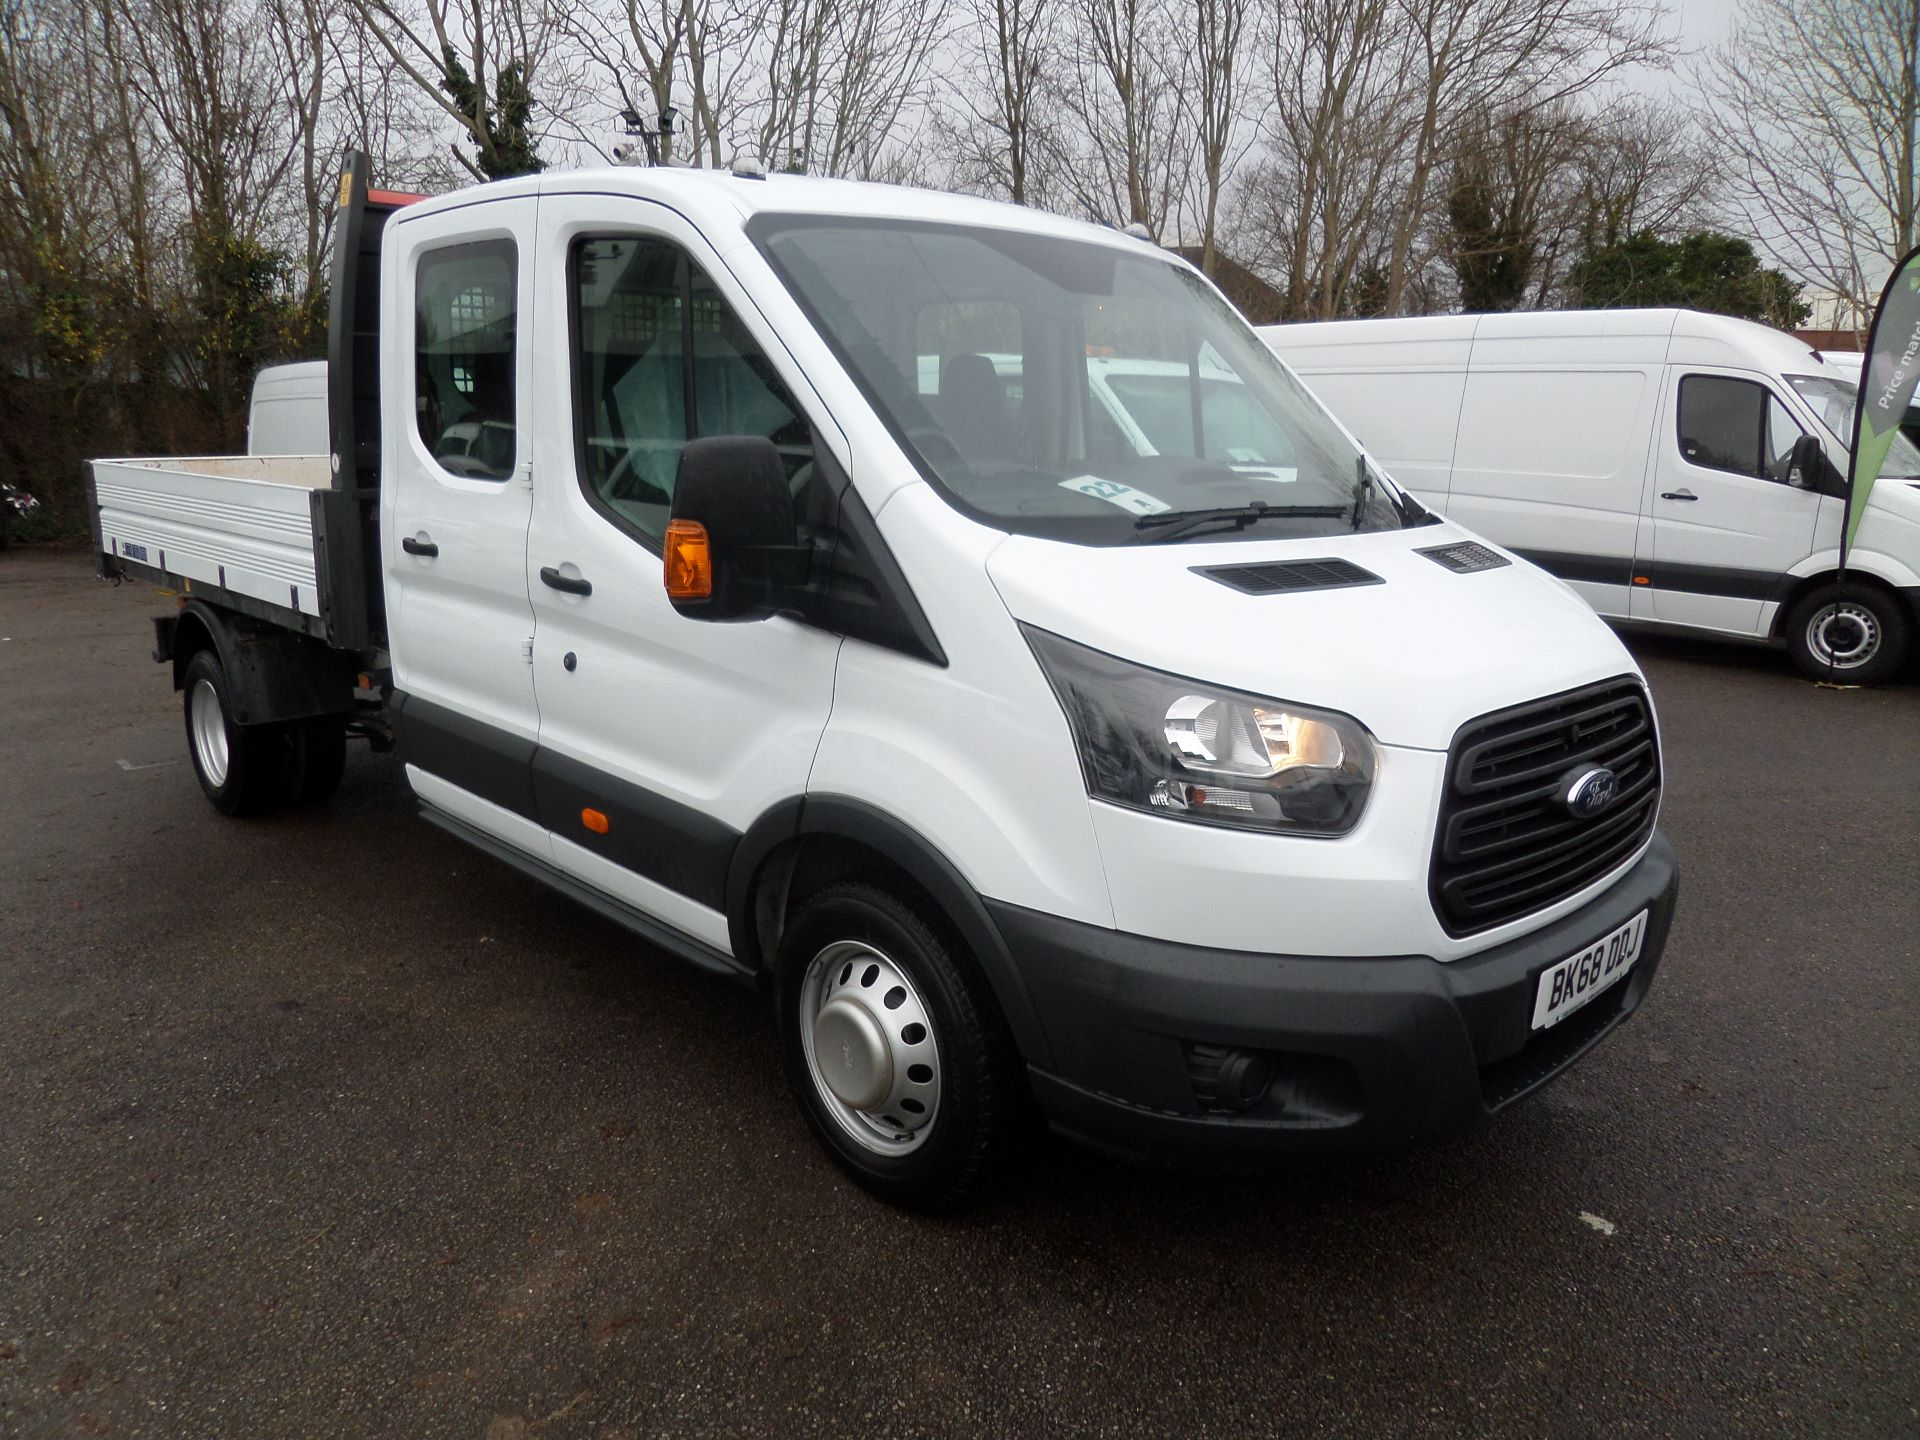 2018 Ford Transit 2.0 Tdci 130Ps Double Cab Tipper Euro 6 (BK68DDJ)